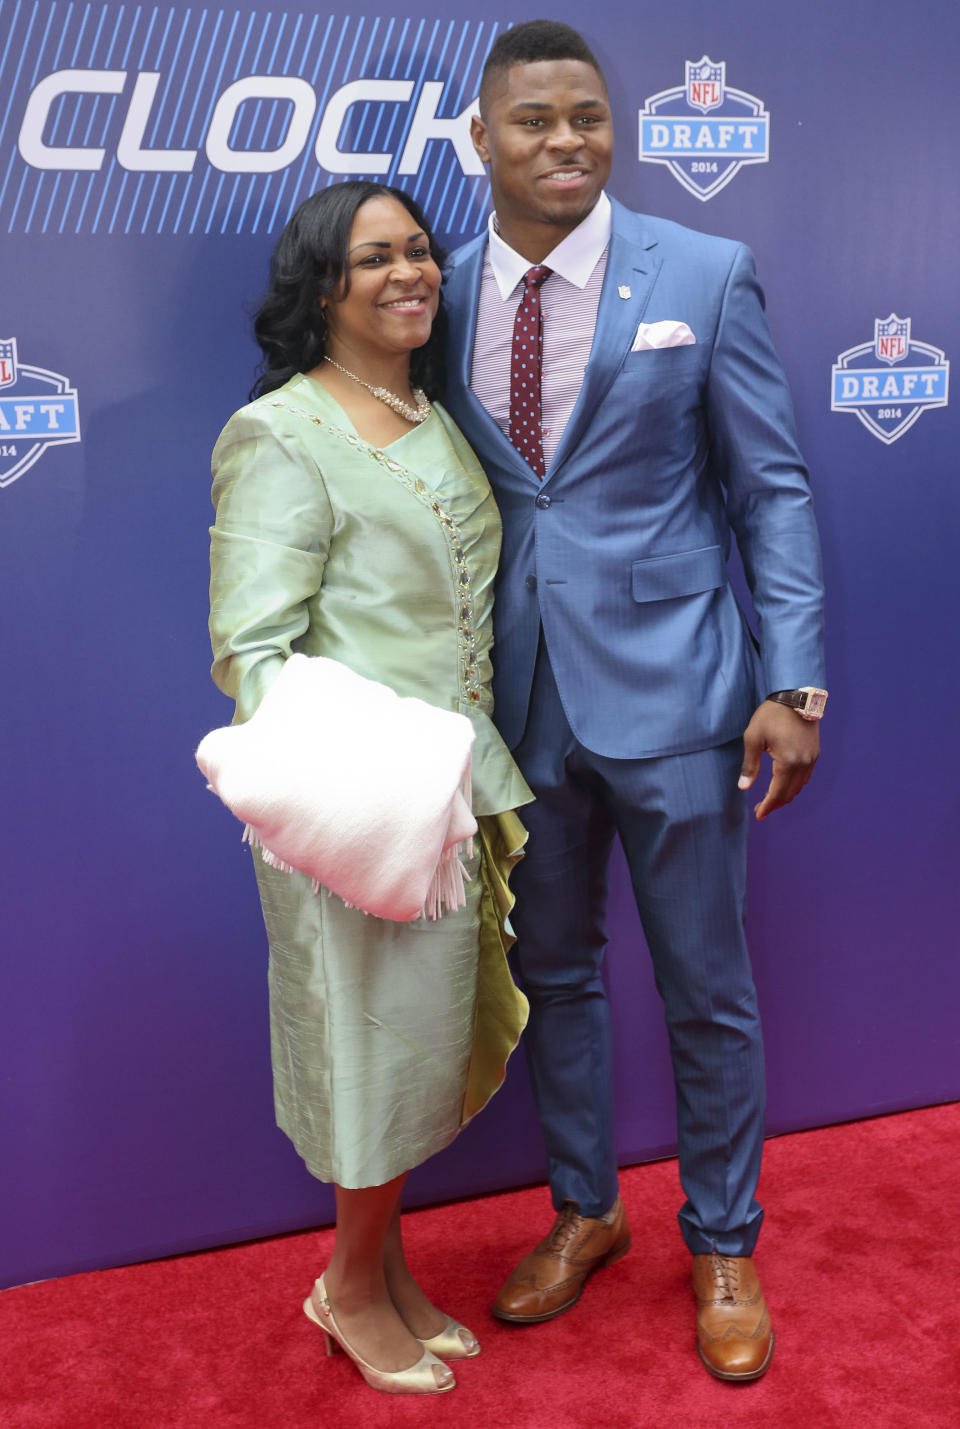 Buffalo linebacker Khalil Mack, right, poses for photos with his mother, Yolanda Mack, on the red carpet upon arriving for the first round of the 2014 NFL Draft, Thursday, May 8, 2014, in New York. (AP Photo/Craig Ruttle)